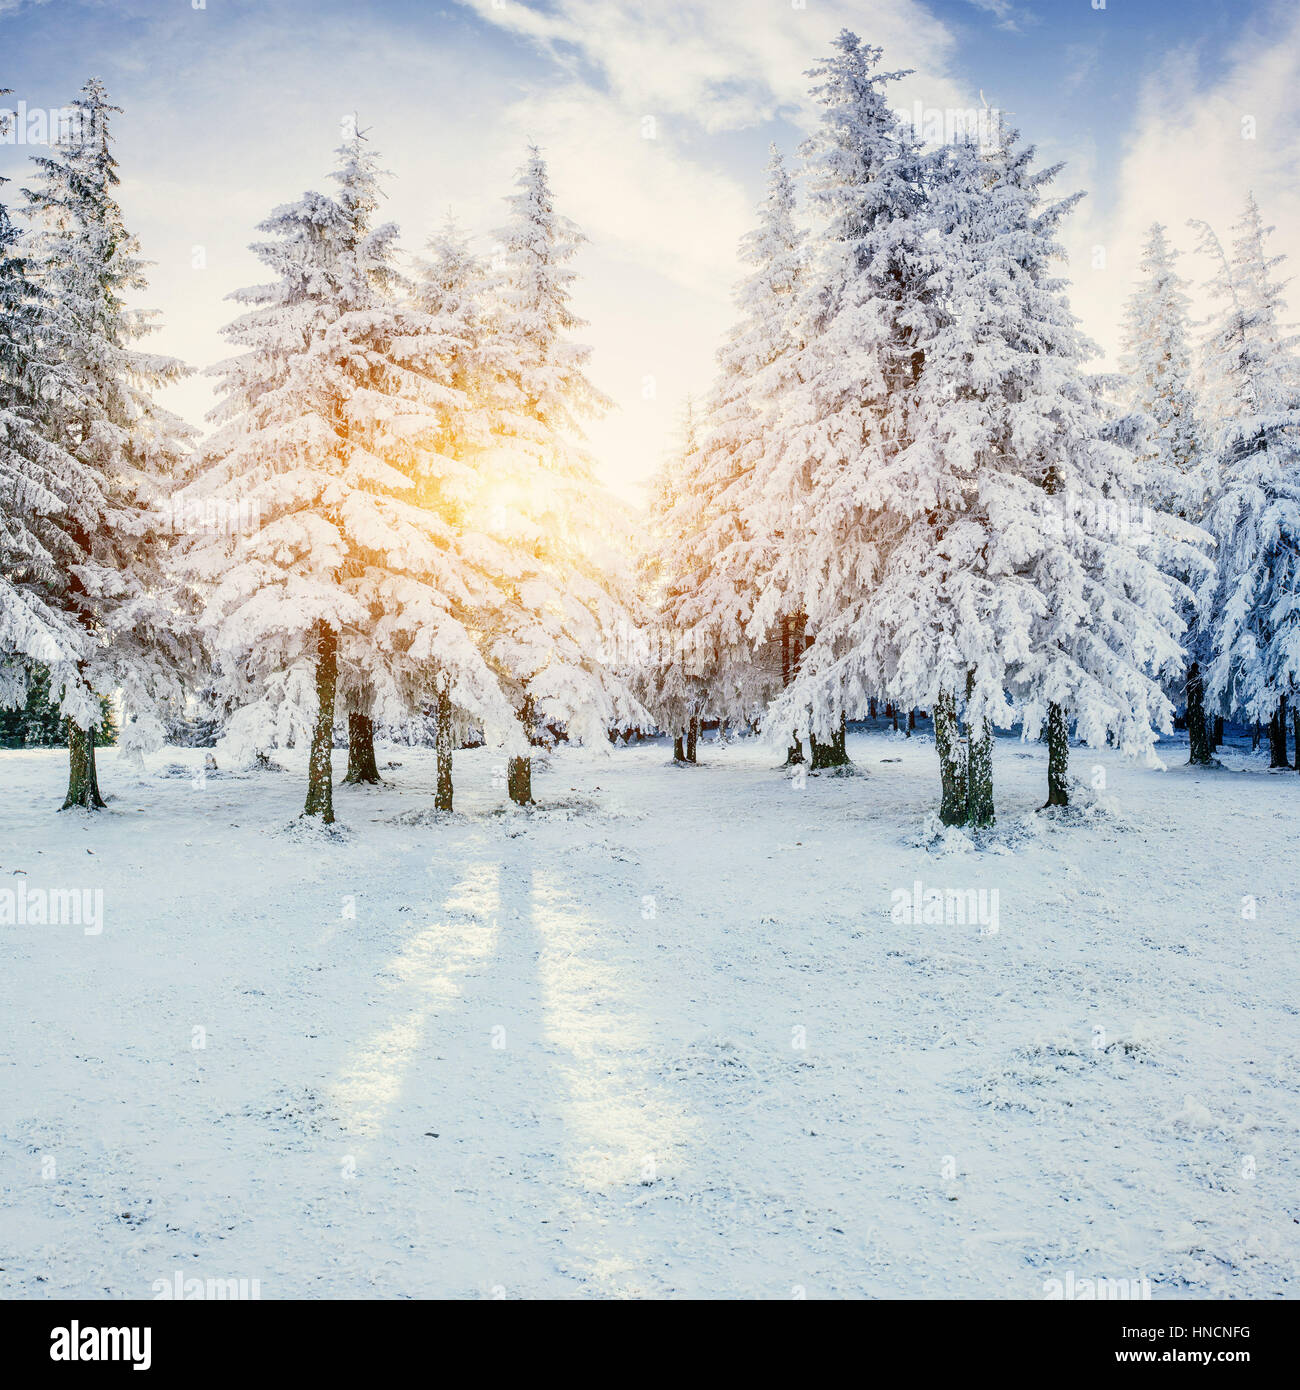 The sun's rays make their way through the snow-covered spruce in Stock Photo